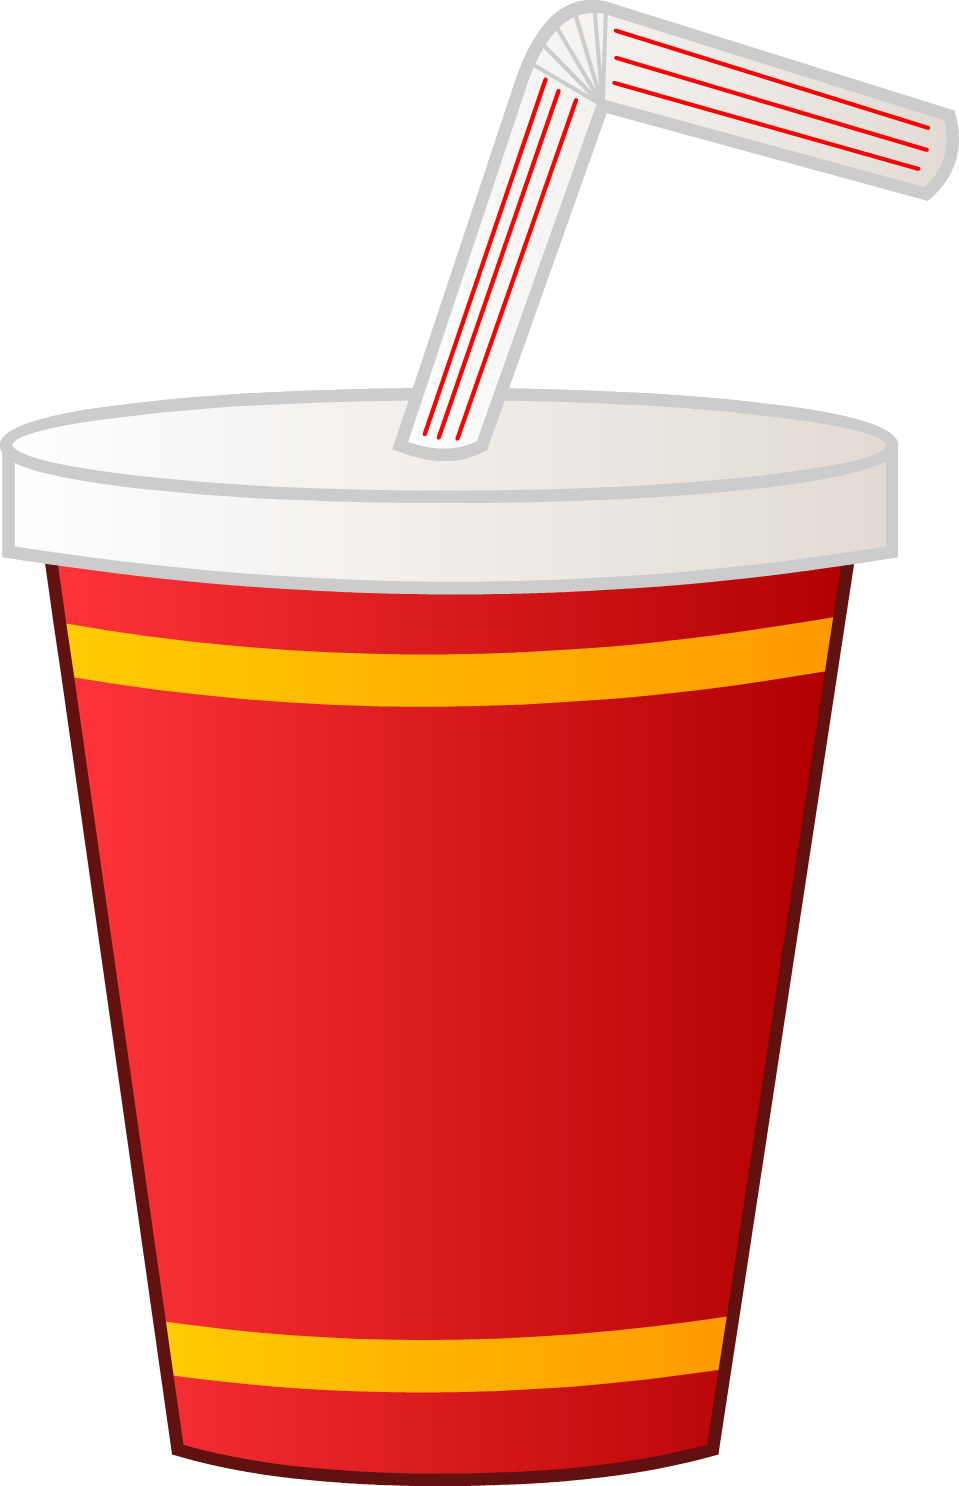 Soda glass clipart png royalty free stock Soda Great Cliparts For Free Clipart Glass And Use In This ... png royalty free stock